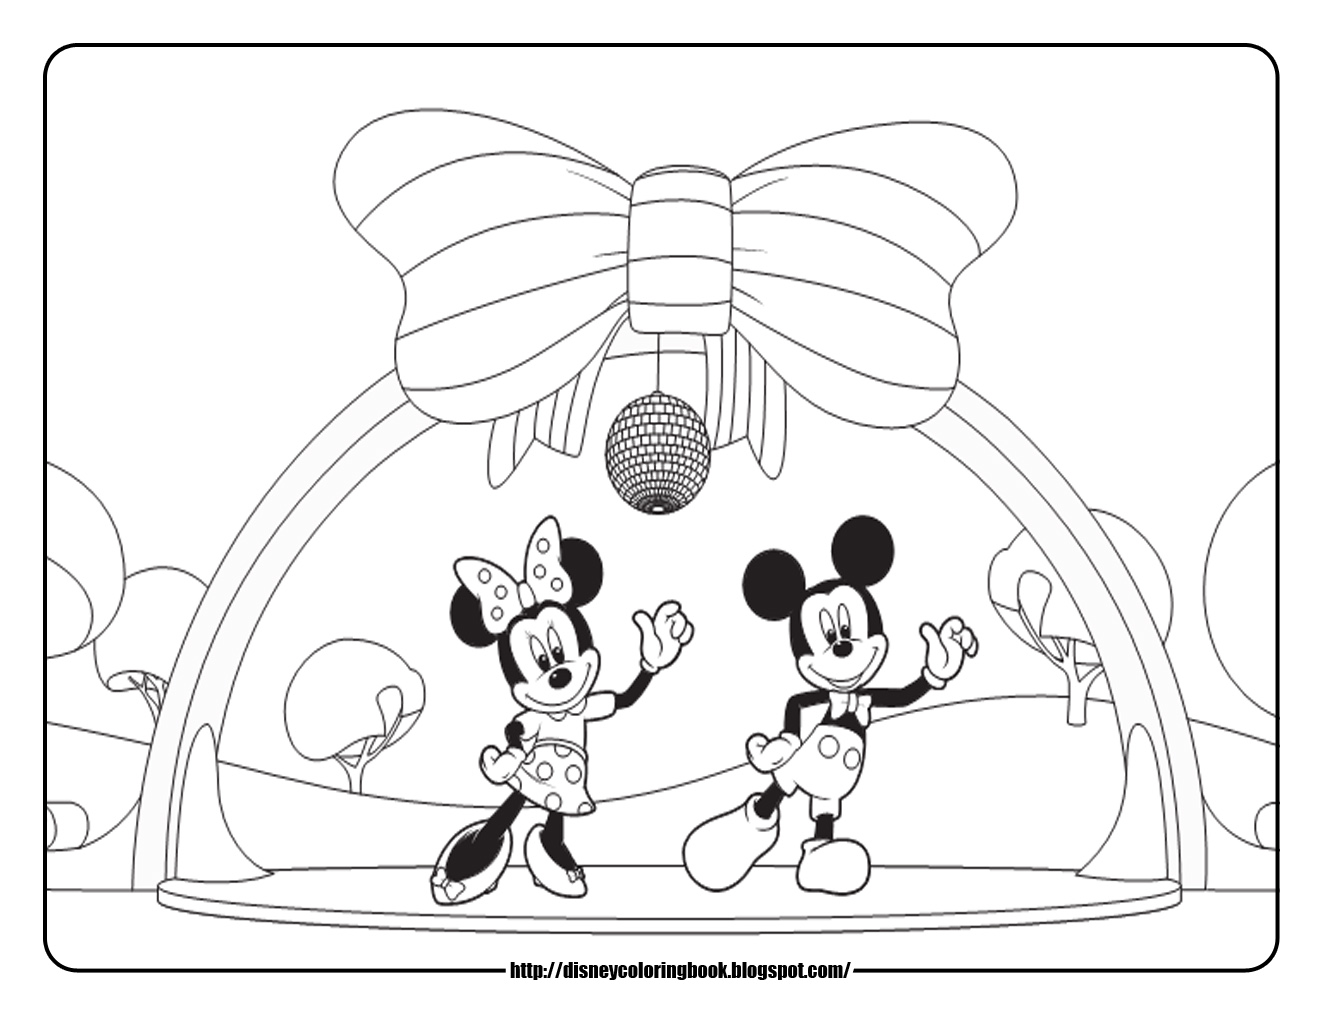 Disney Coloring Pages And Sheets For Kids Mickey Mouse Coloring Mickey Mouse House